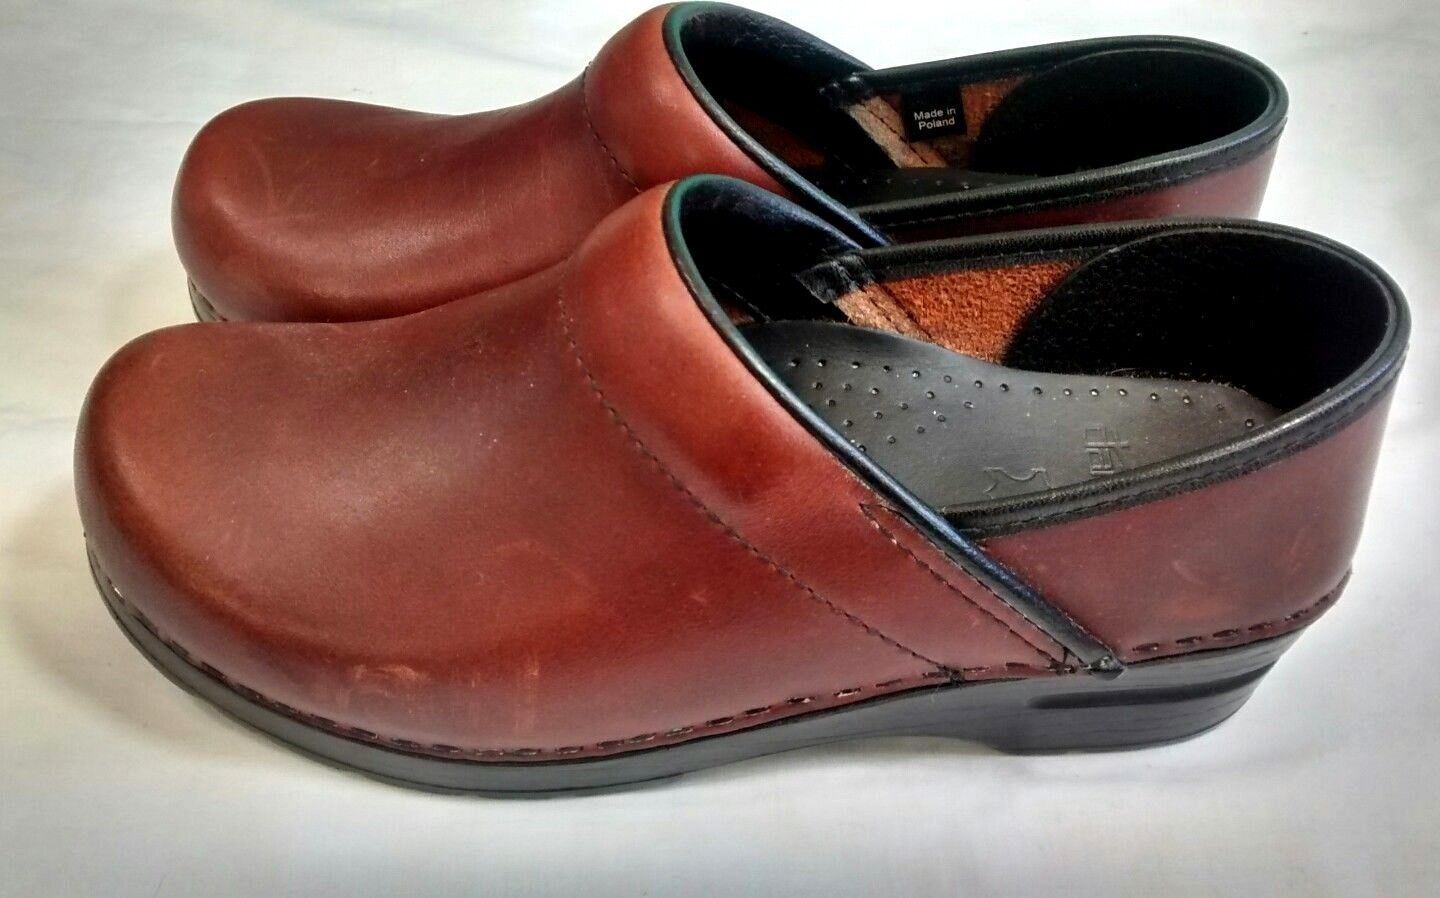 Dansko Brown Leather Clogs 38 306-58260 Stapled